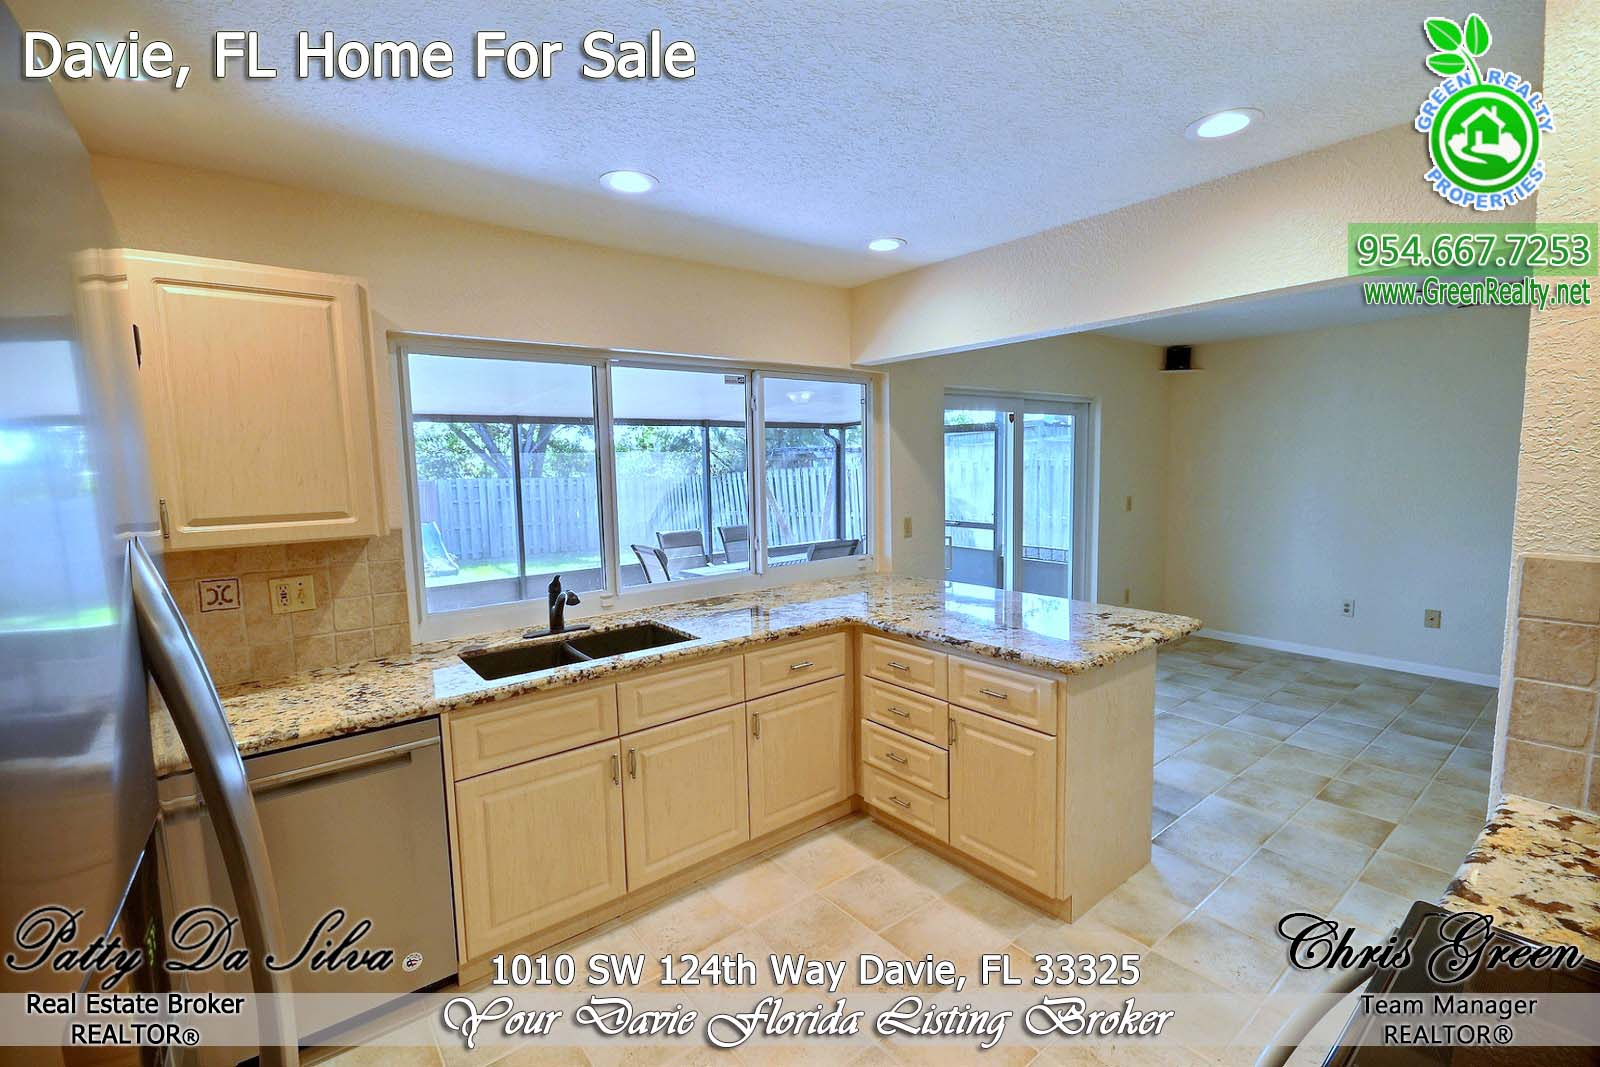 14 Davie Homes For Sale (6)